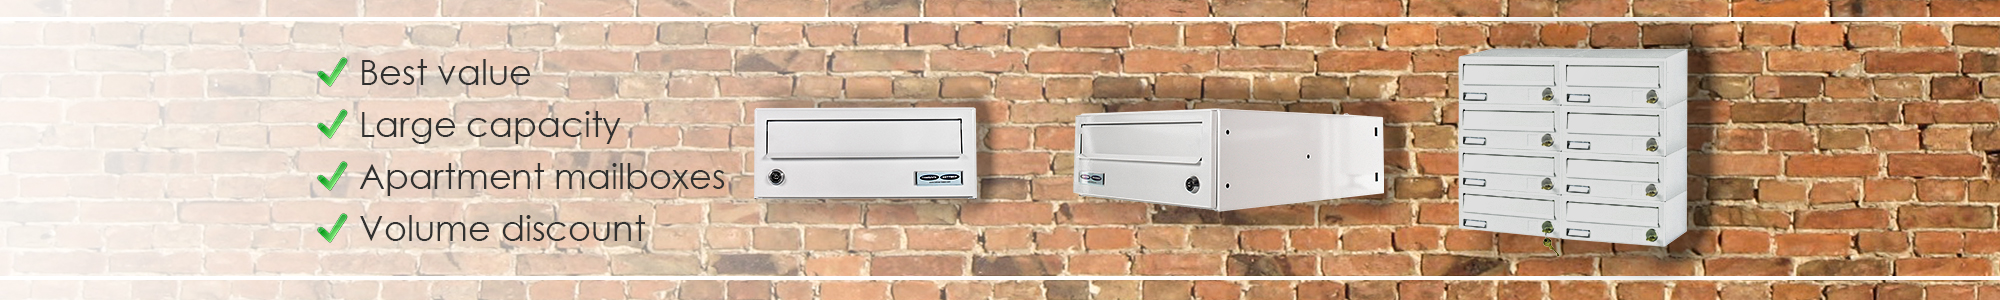 Multi occupancy mailboxes